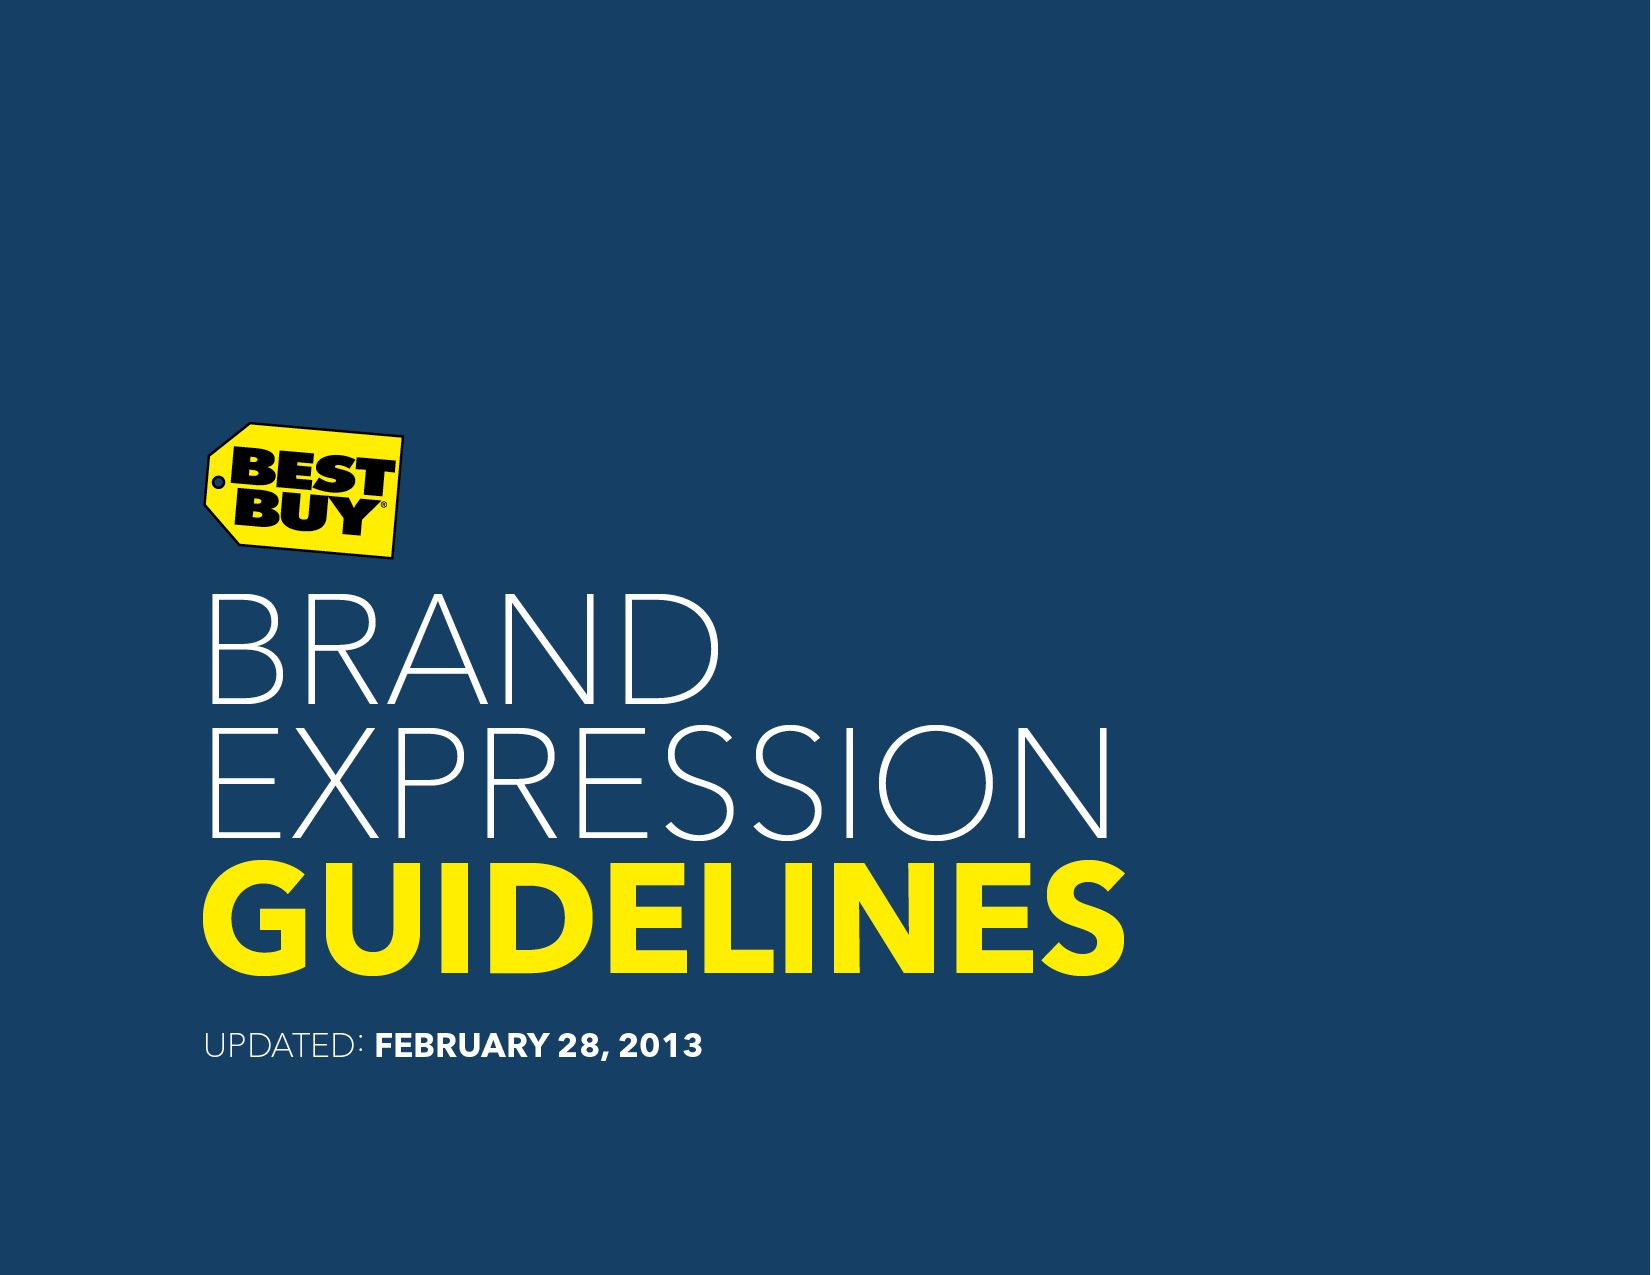 Best Buy Brand Identity Guidelines i heart brand